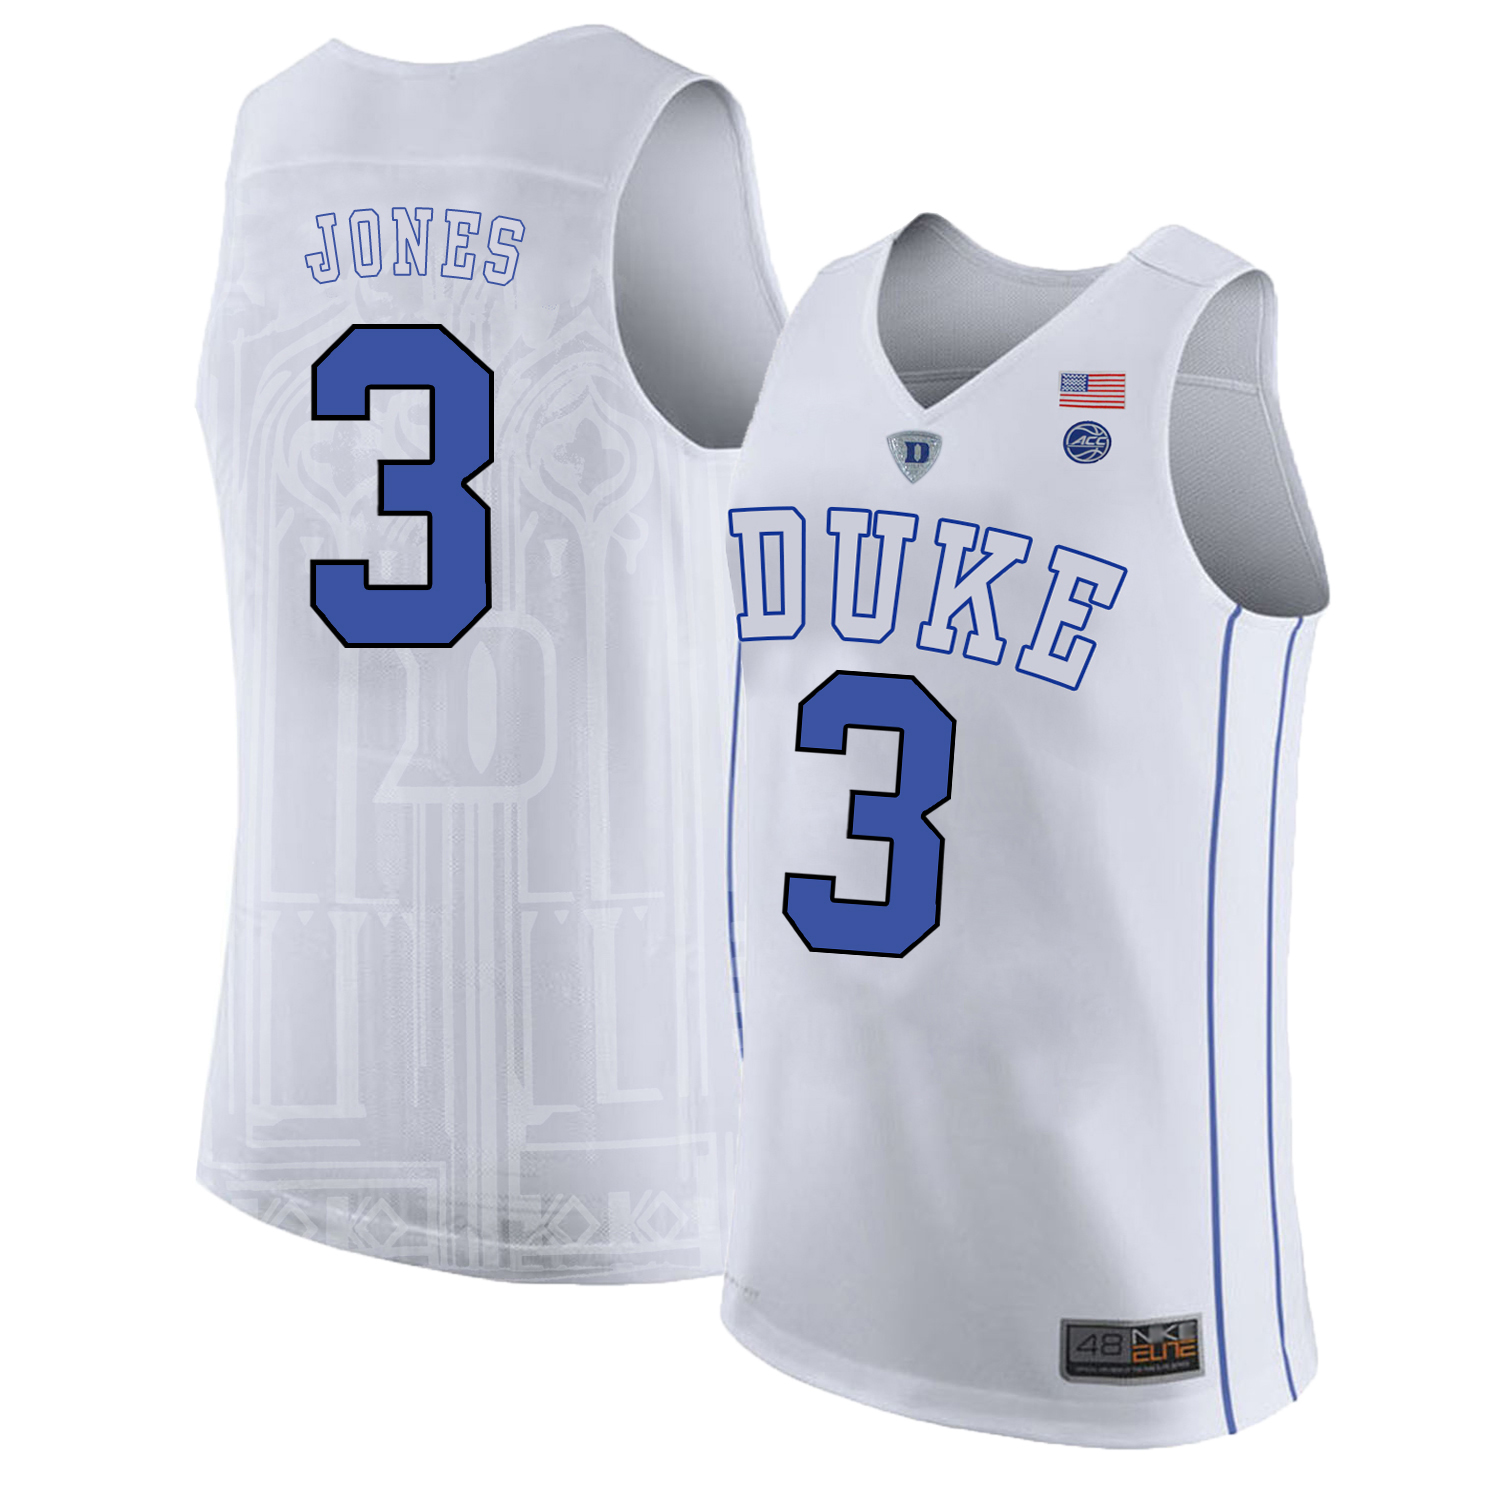 Majestic Athletic Men's Duke Blue Devils #3 Tre Jones White College Basketball Jersey